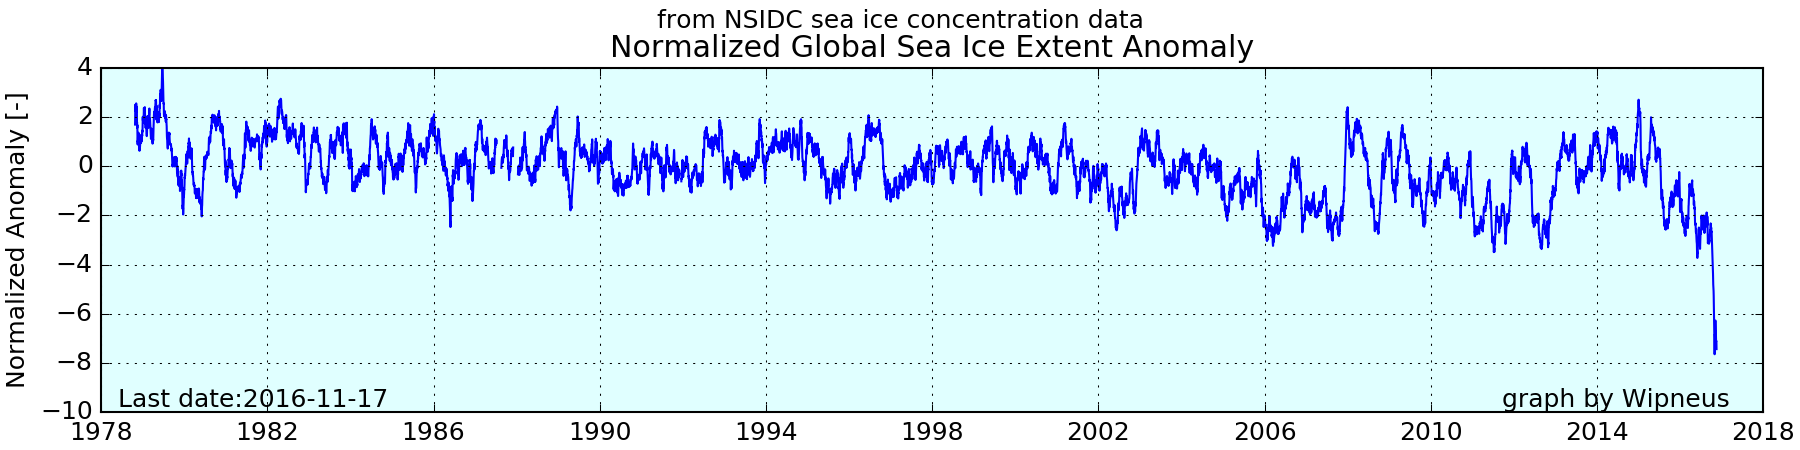 nsidc_global_extent_normanomaly